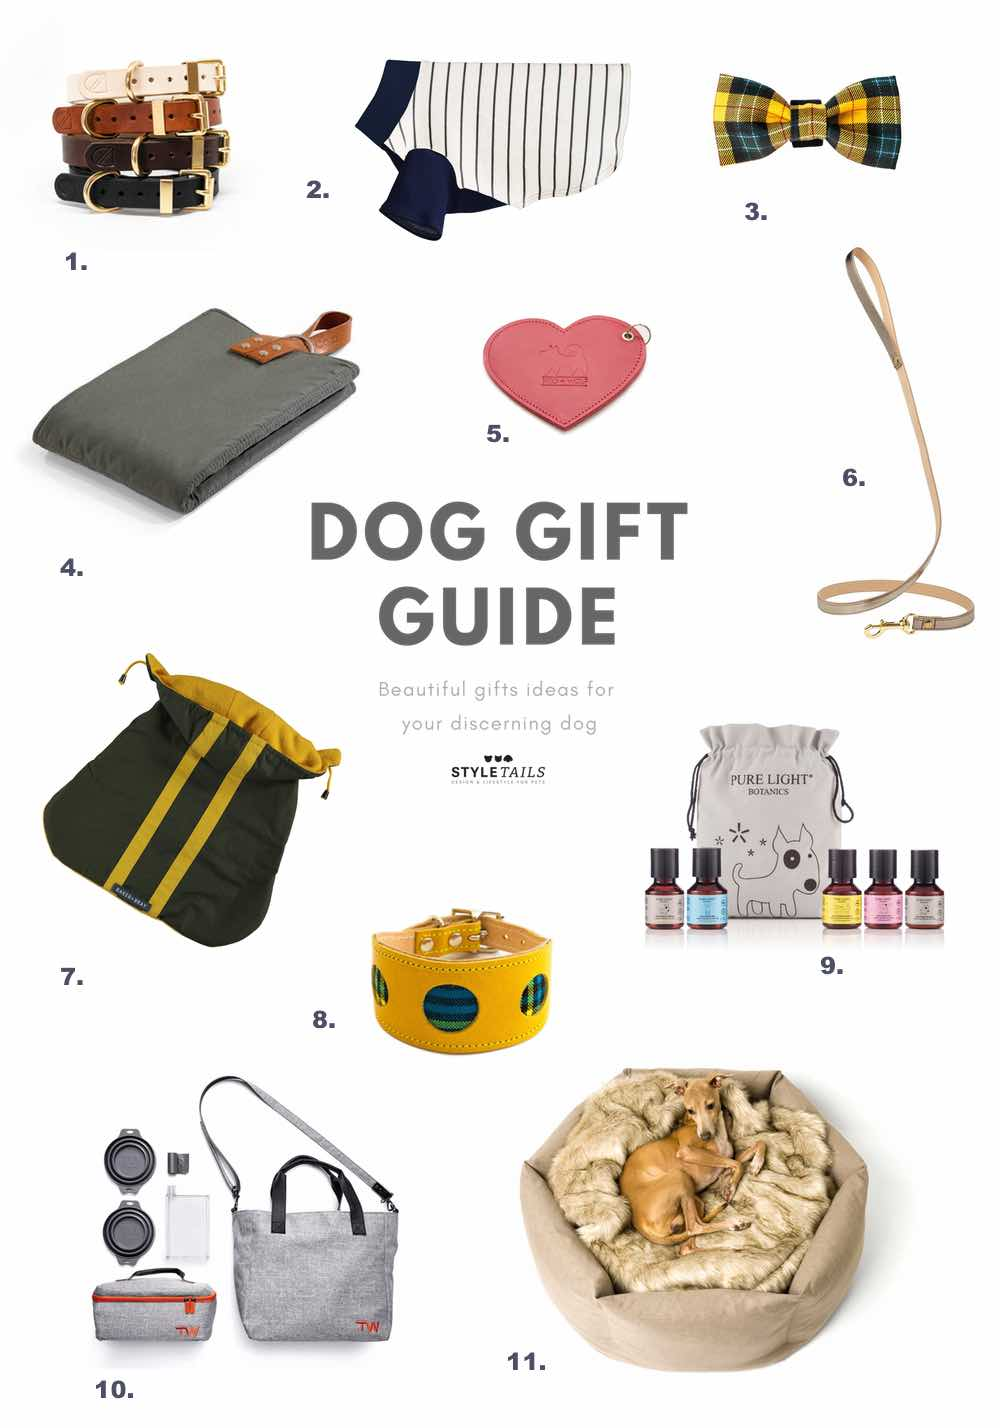 and beautiful new beds weve rounded up 11 gorgeous gifts for discerning dogs that are sure to get the woof of approval come christmas morning - Christmas Presents For Dogs